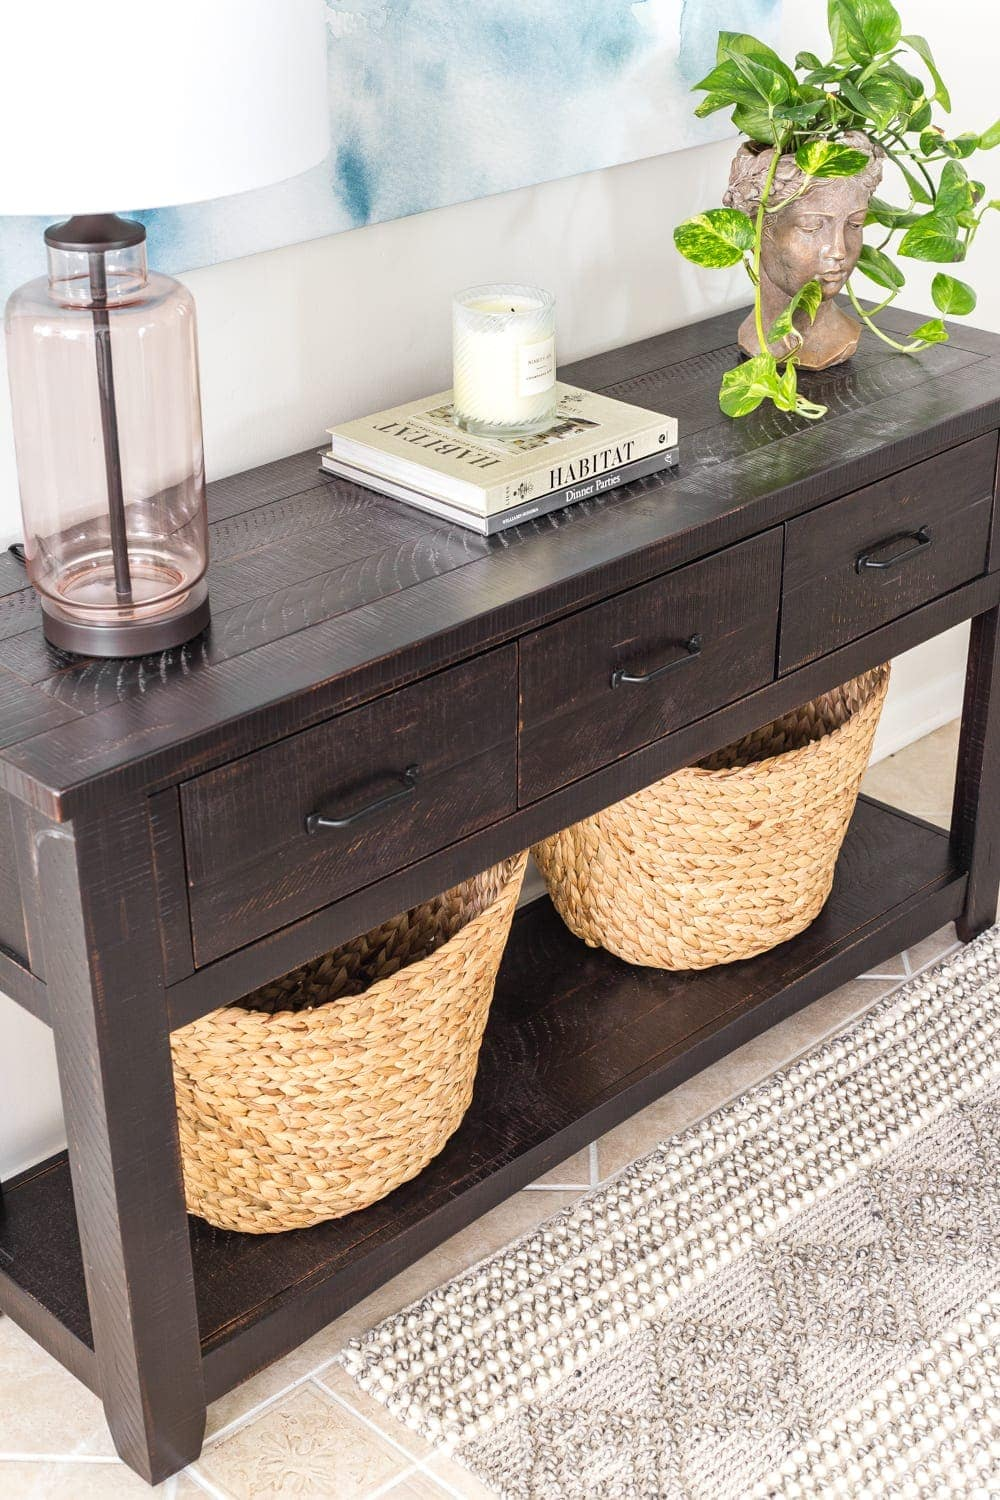 Drawers and baskets for accessible entryway storage in a breakfast nook